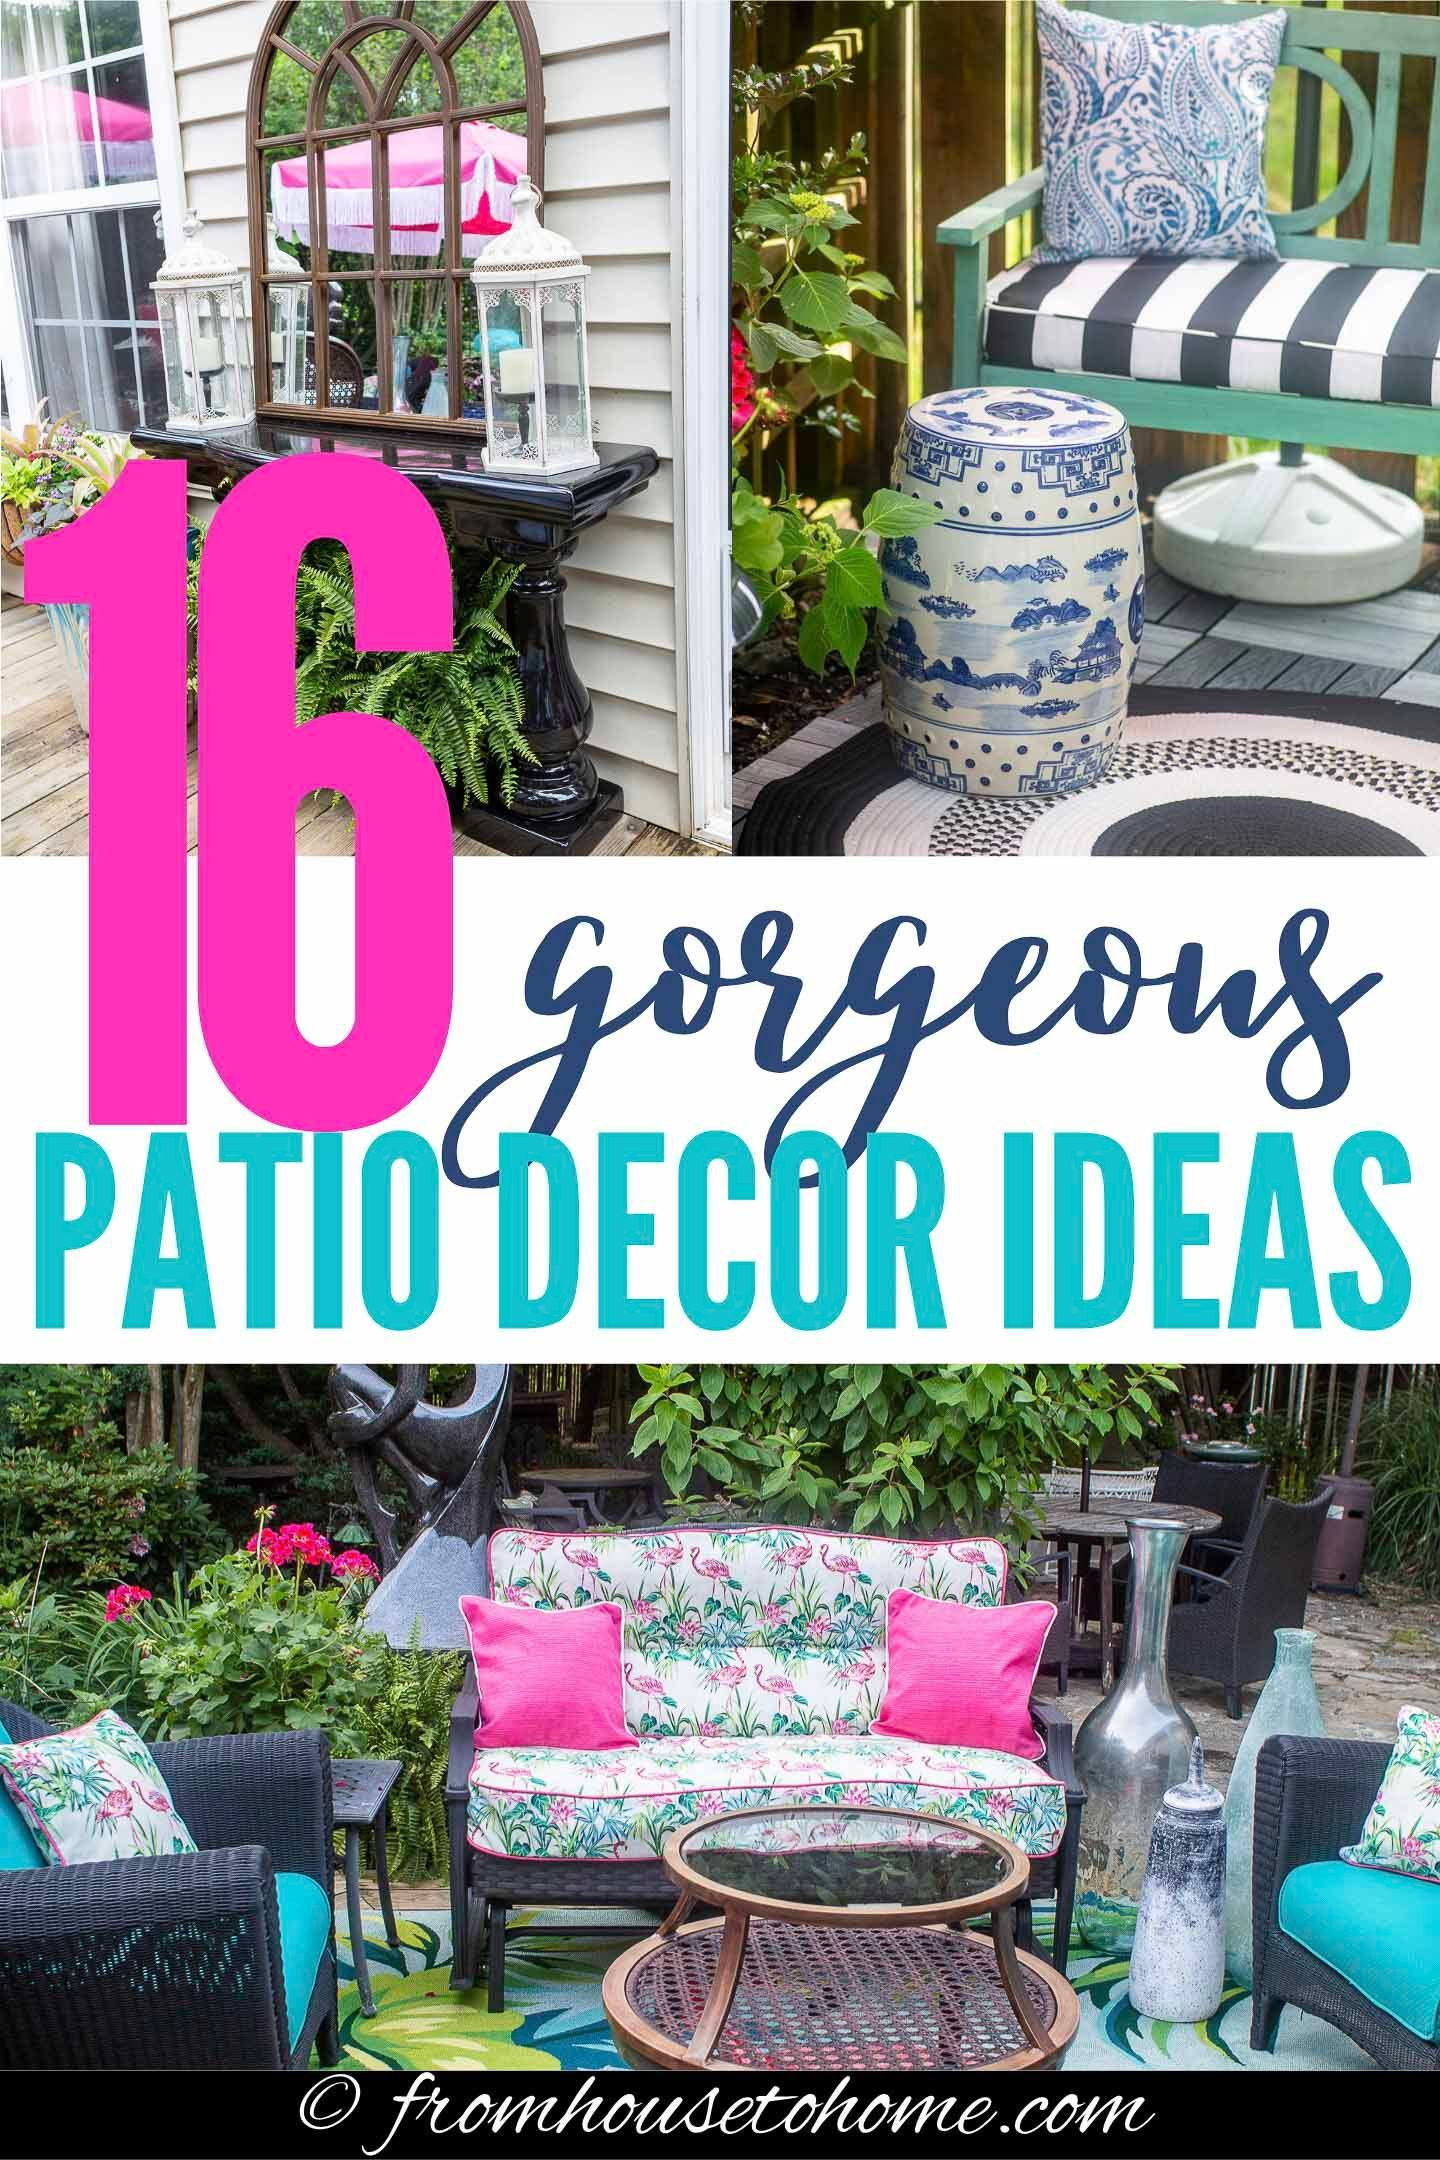 Small Patio Decorating Ideas That Make Your Deck Into An ...